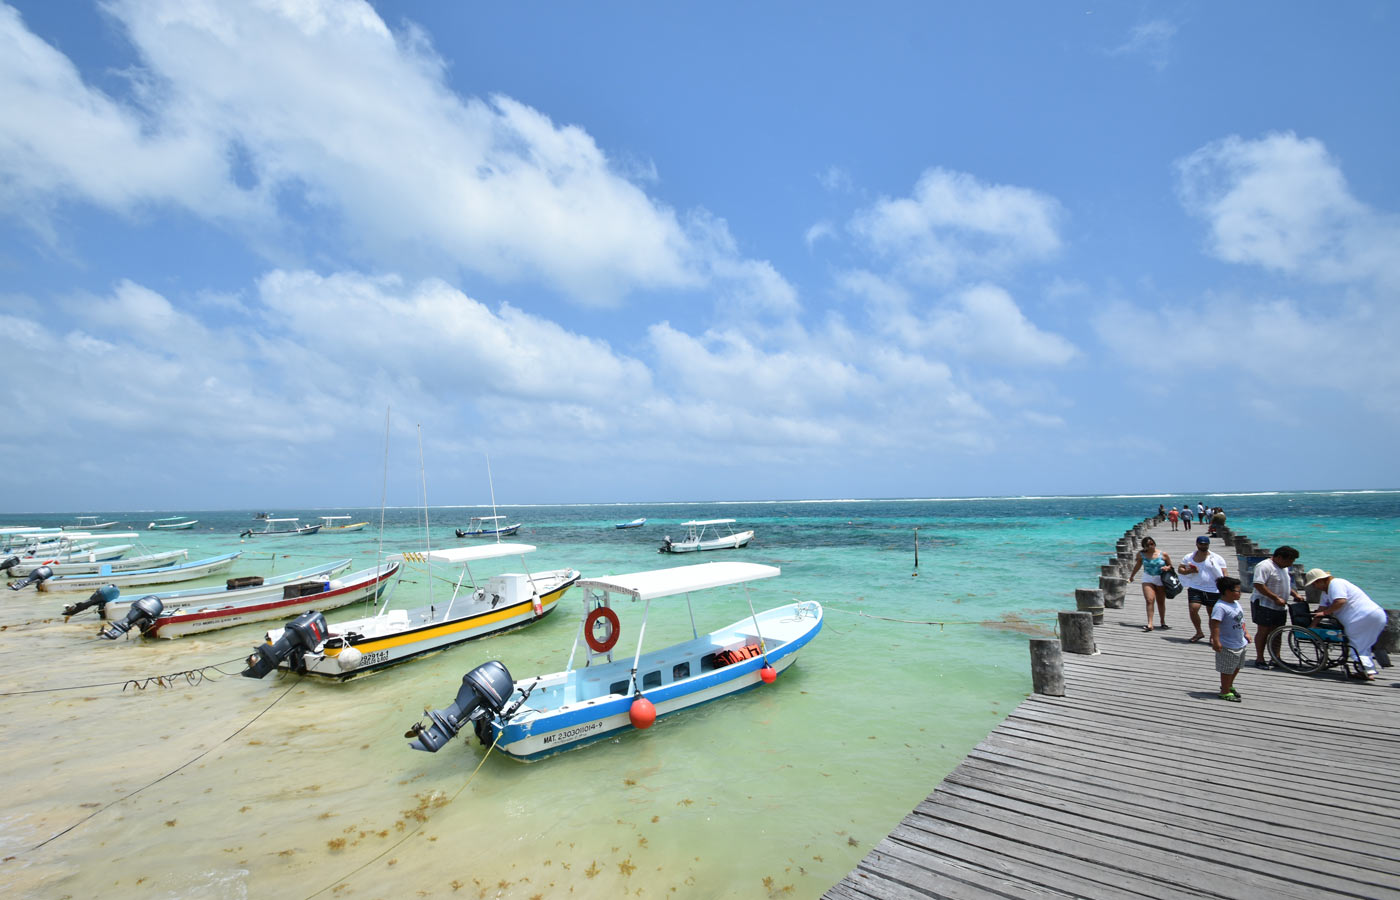 small boats anchored on the beach as people stroll up and down the pier